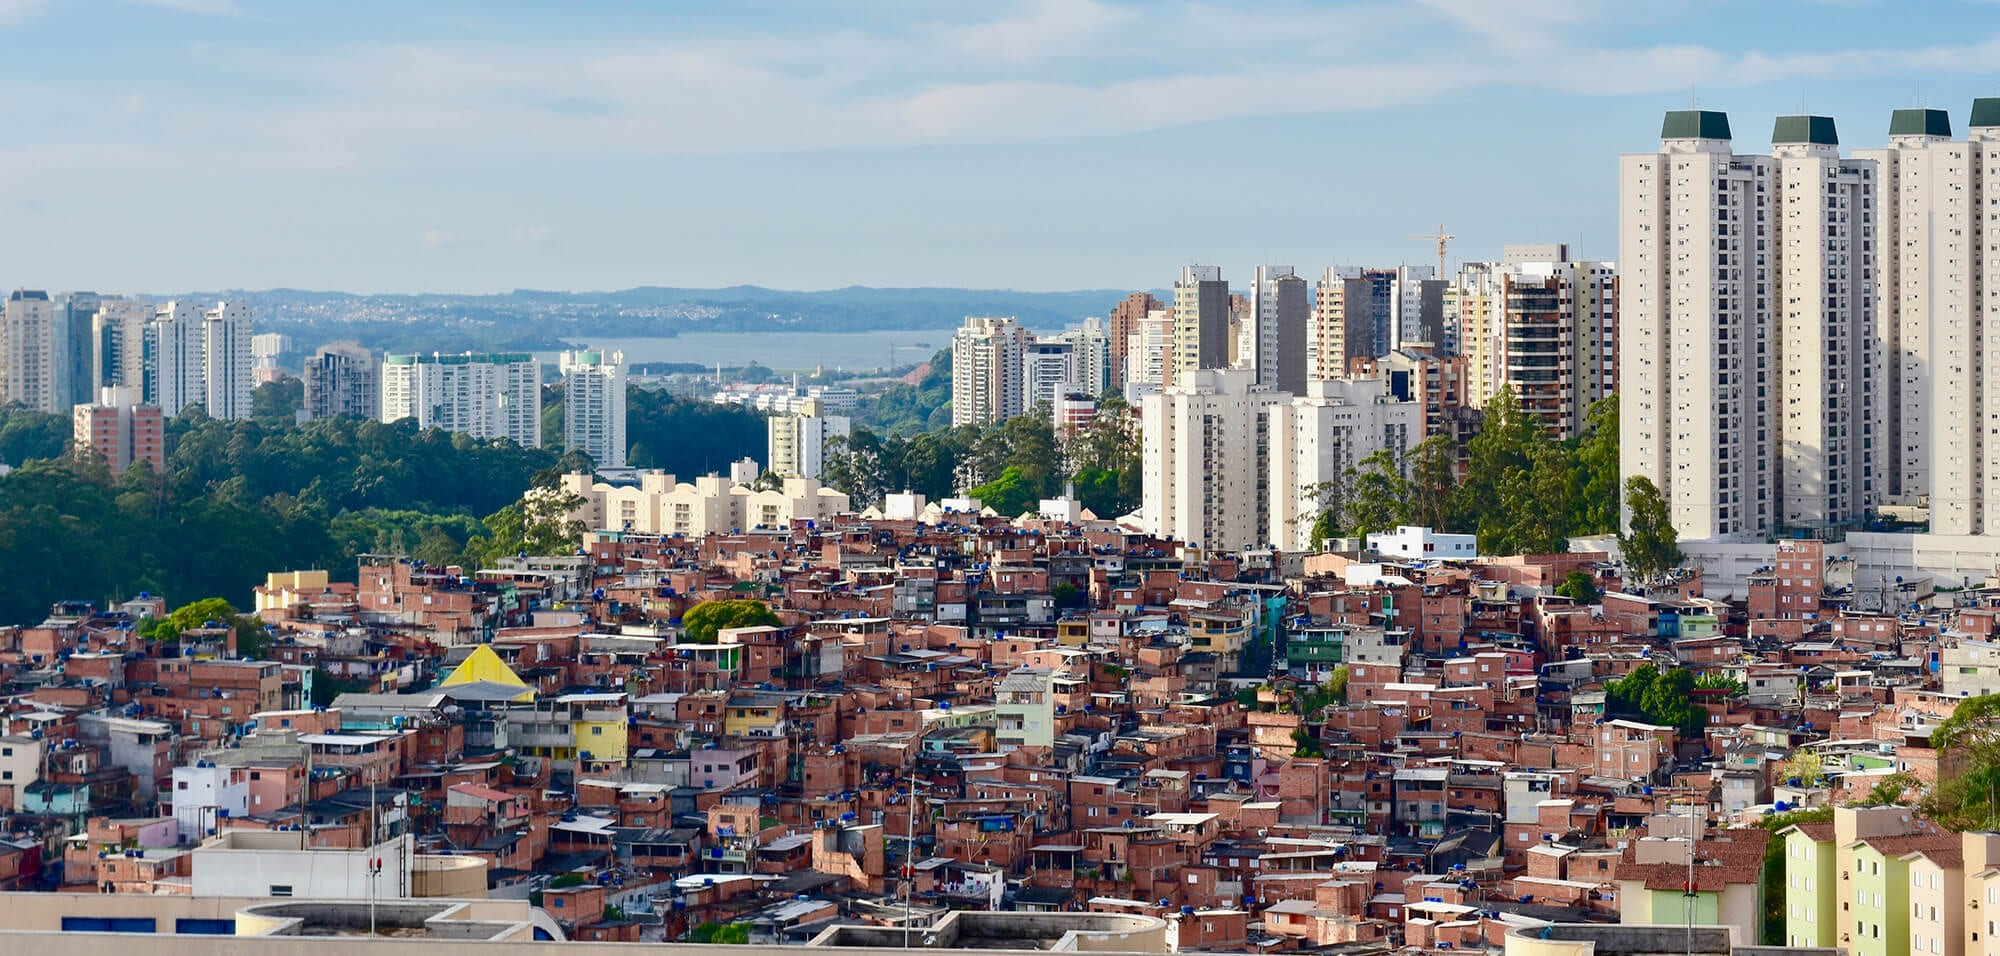 Favela slum with high-rises and lake in background in Sao Paulo